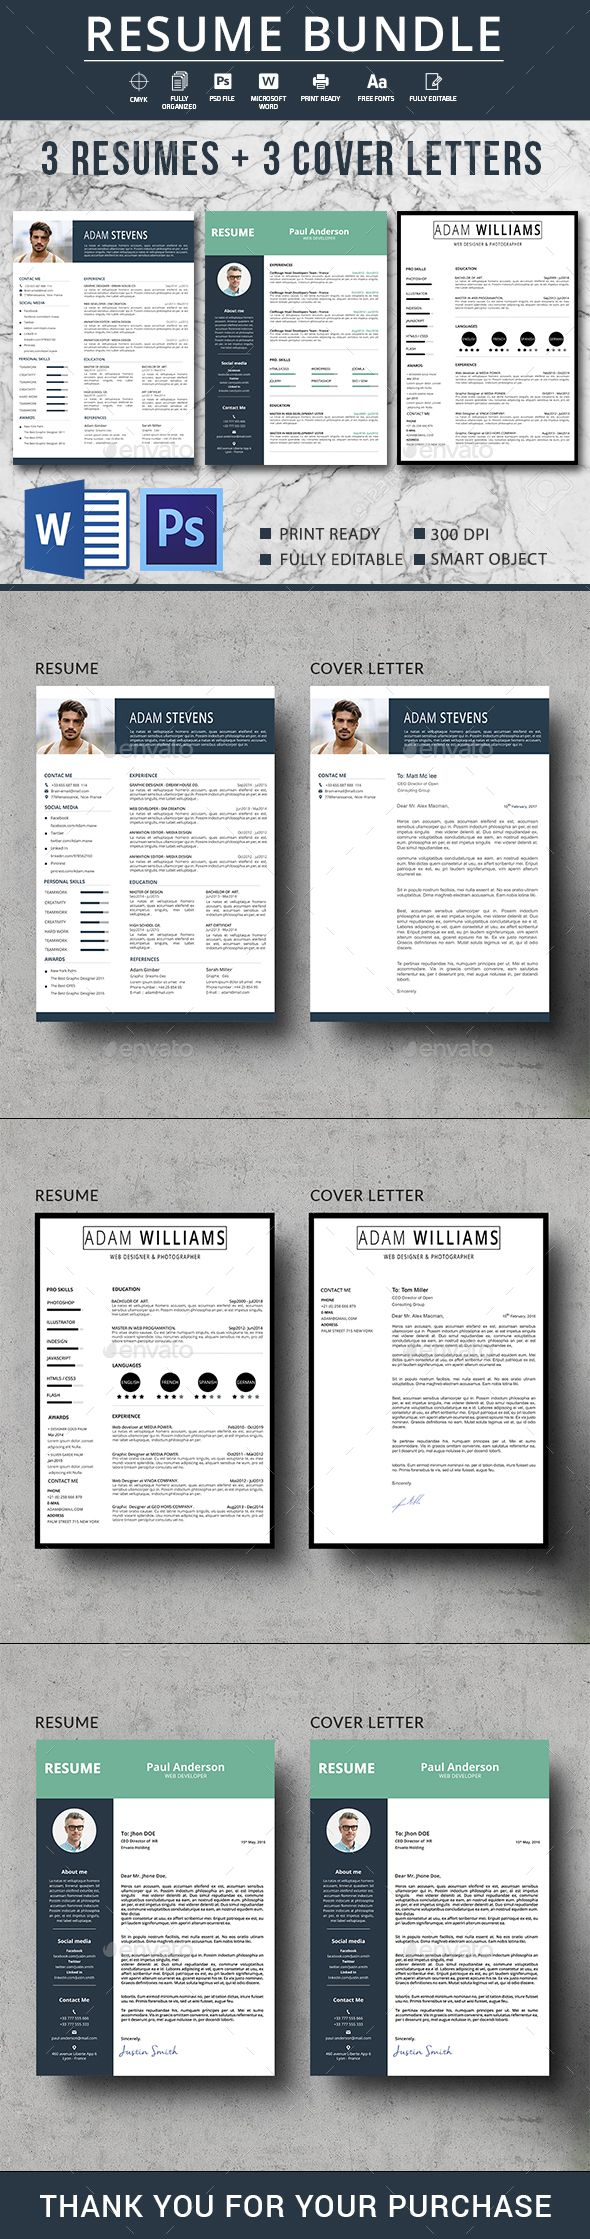 Indeed Find Resumes Word  Best Resume Templates Images On Pinterest 100 Free Resume Word with It Program Manager Resume Word Resume Template Sample Resume For Customer Service Pdf